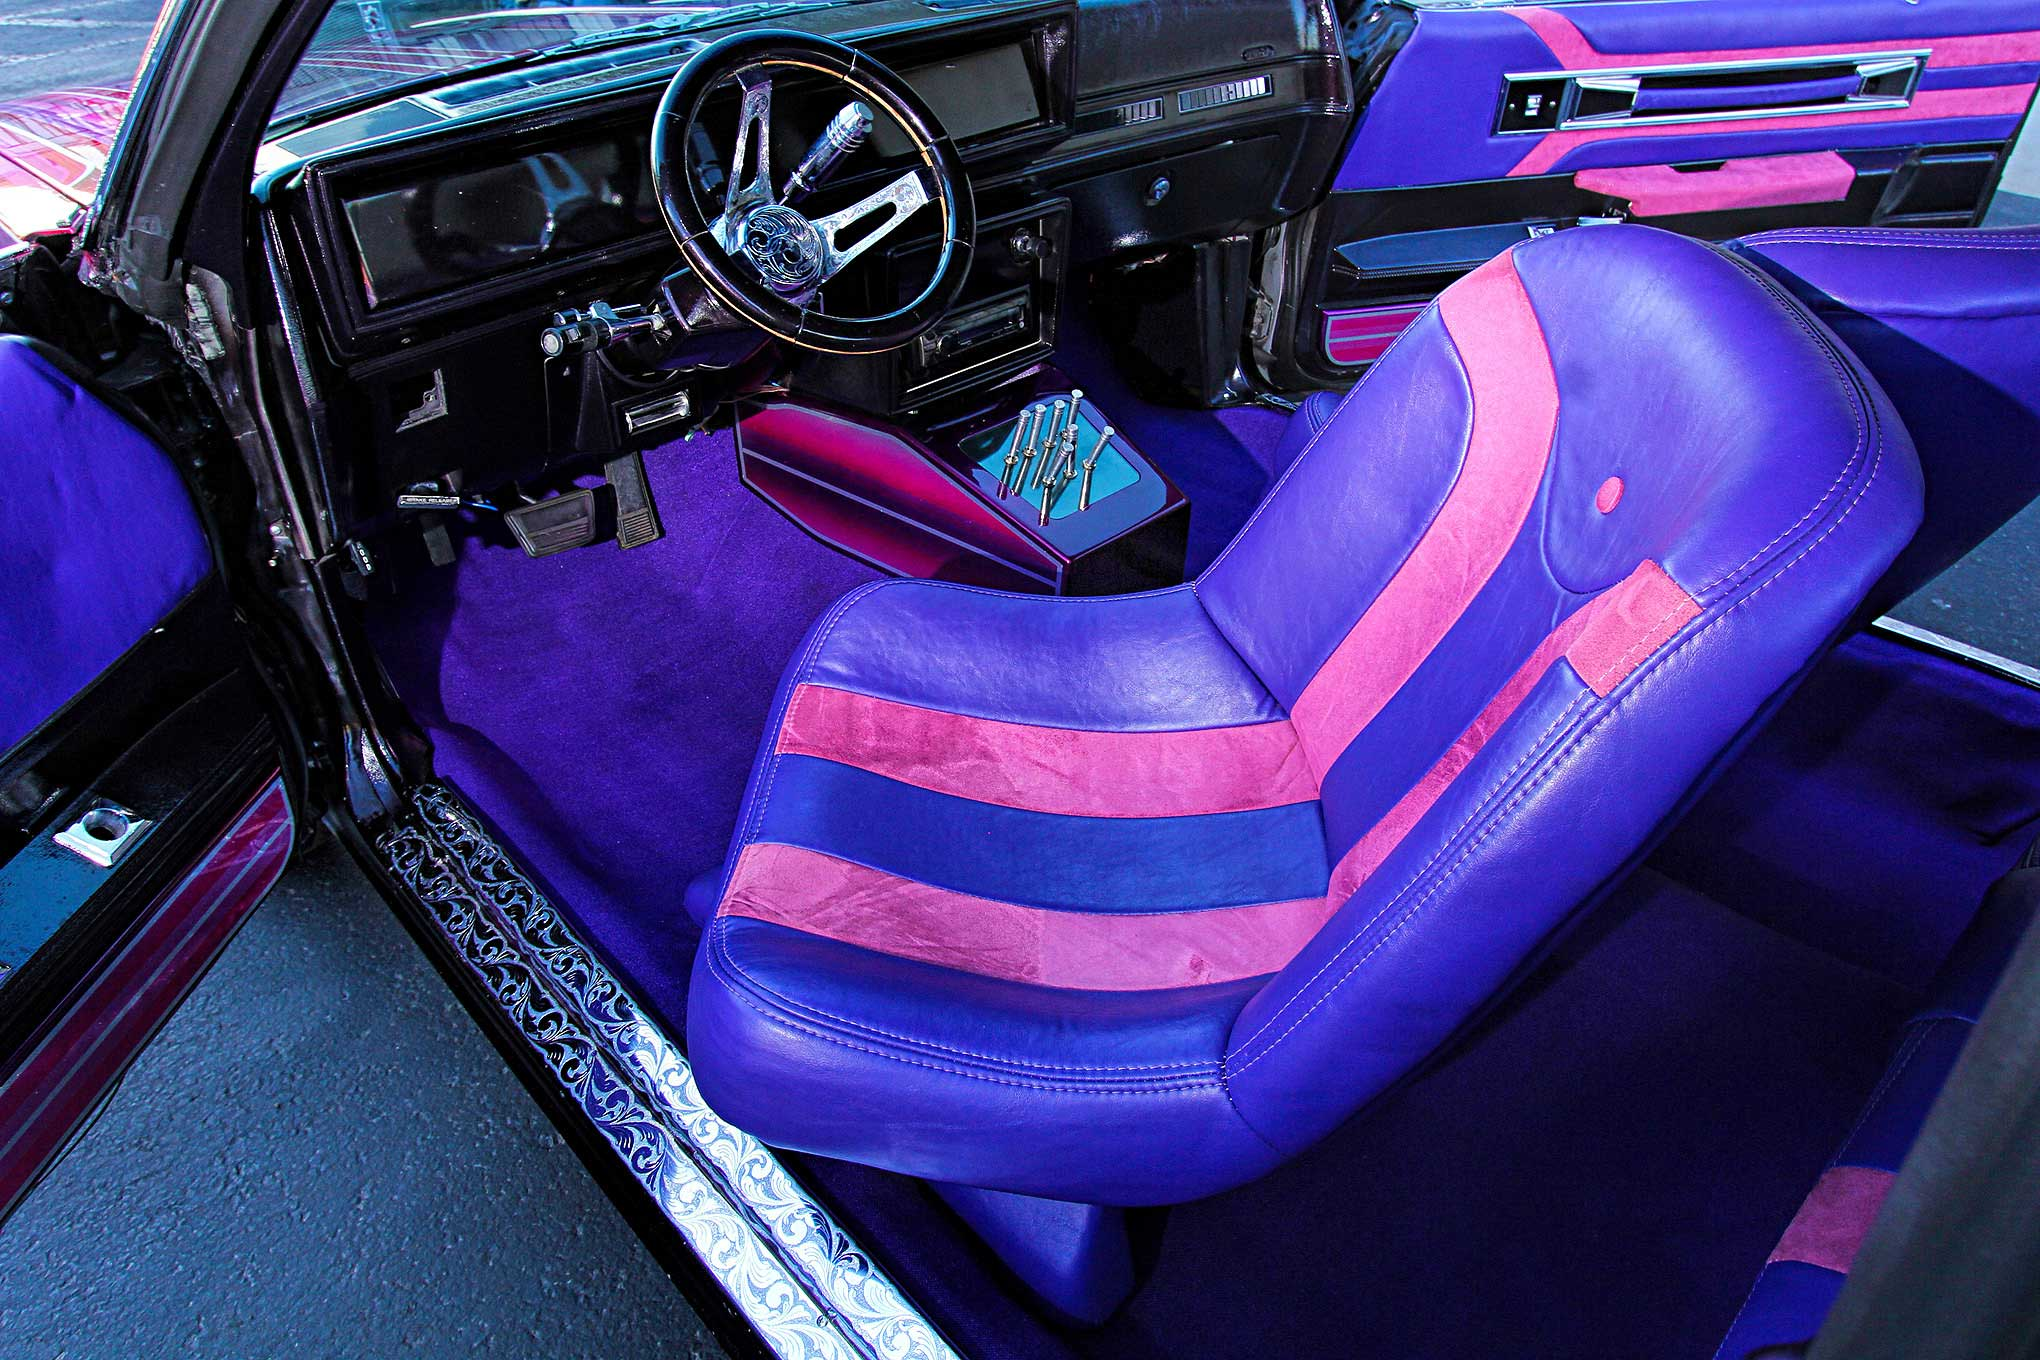 1985 Oldsmobile Cutlass Swivel Driver Seat - Lowrider